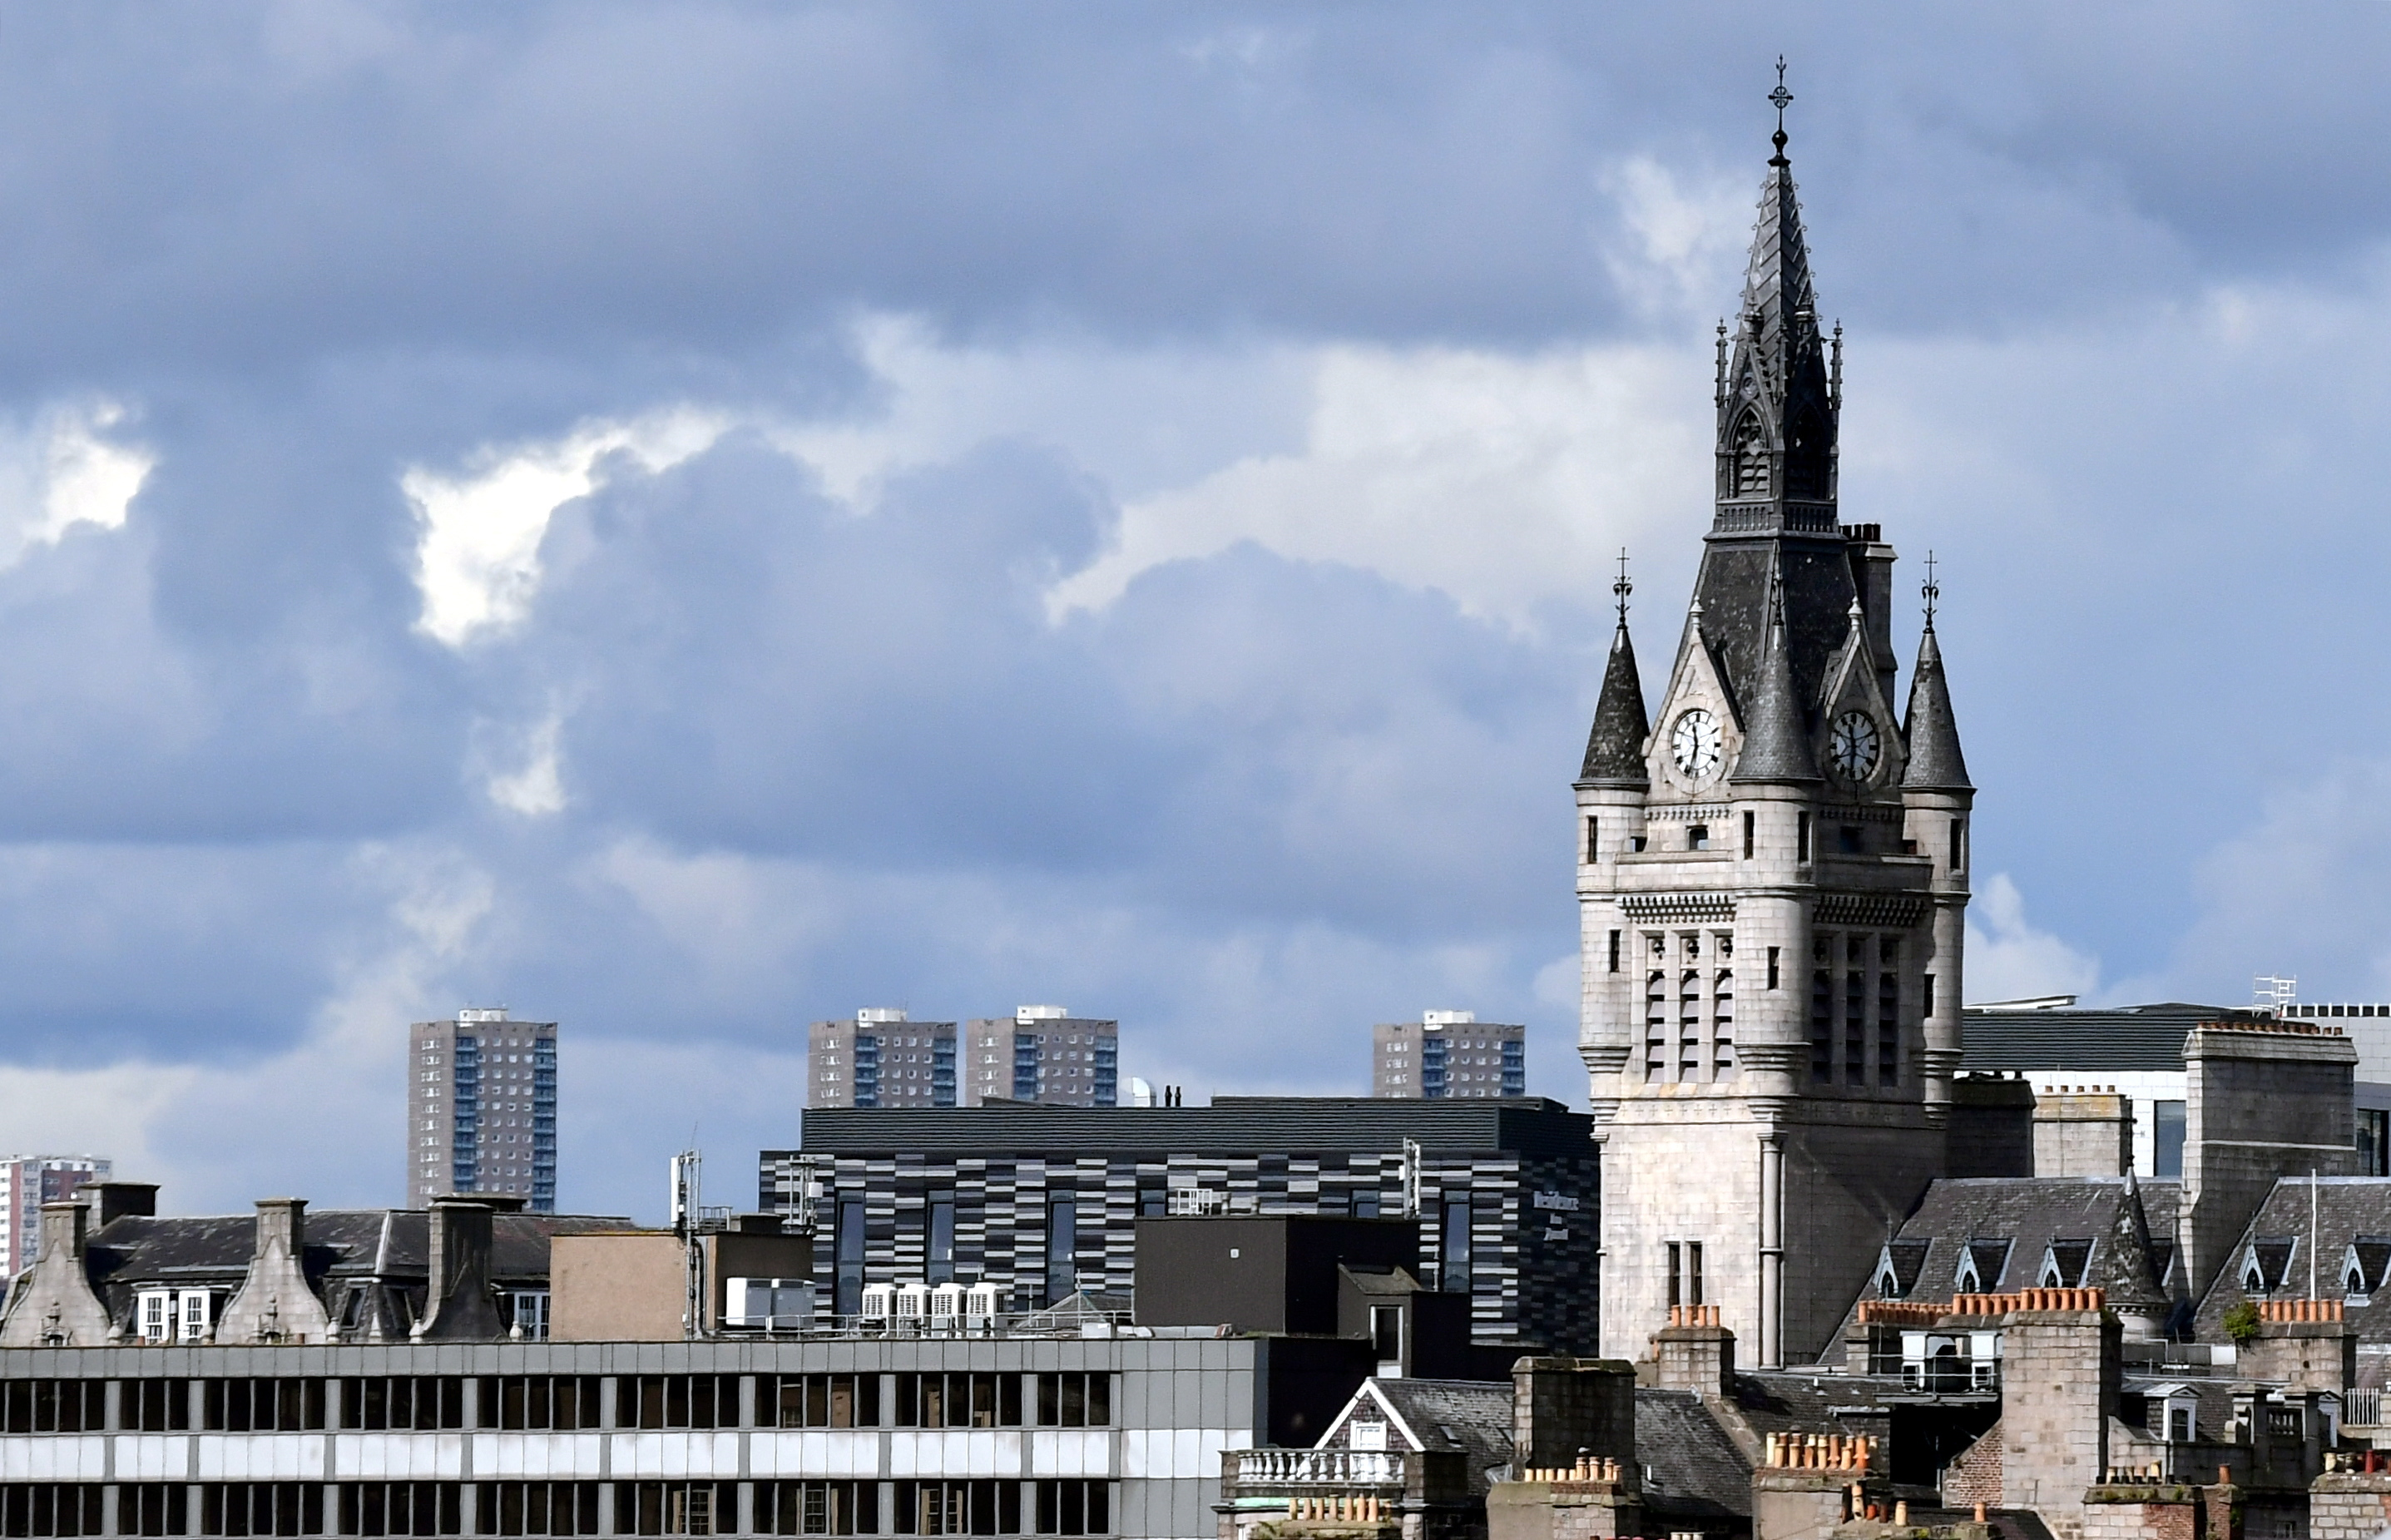 Aberdeen's population is shrinking, according to new figures